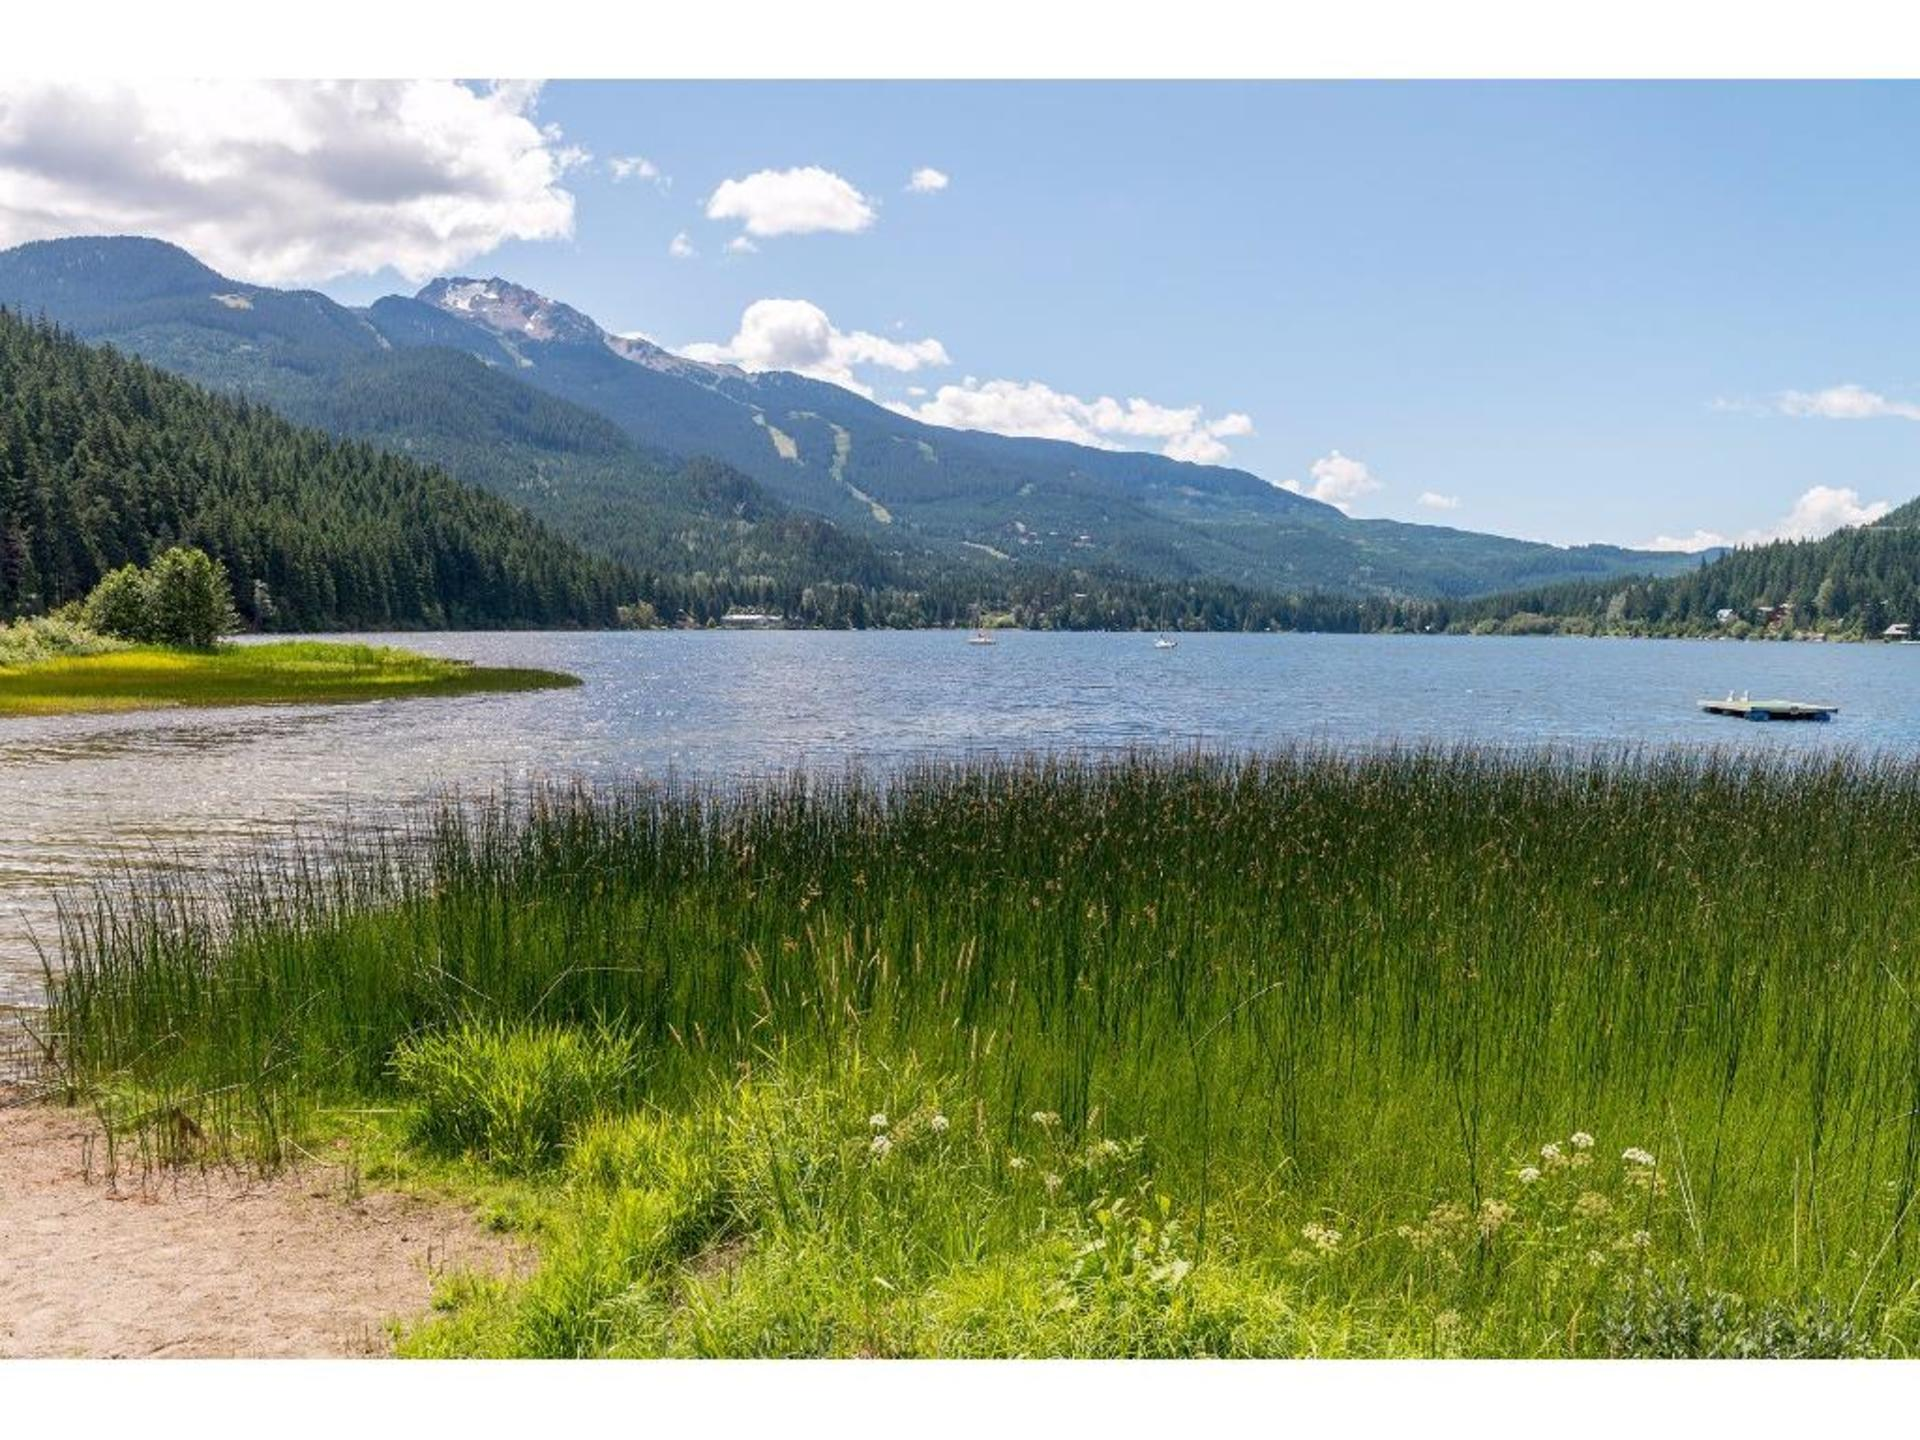 Adventures West at 6850 Crabapple Drive, Whistler Cay Estates, Whistler